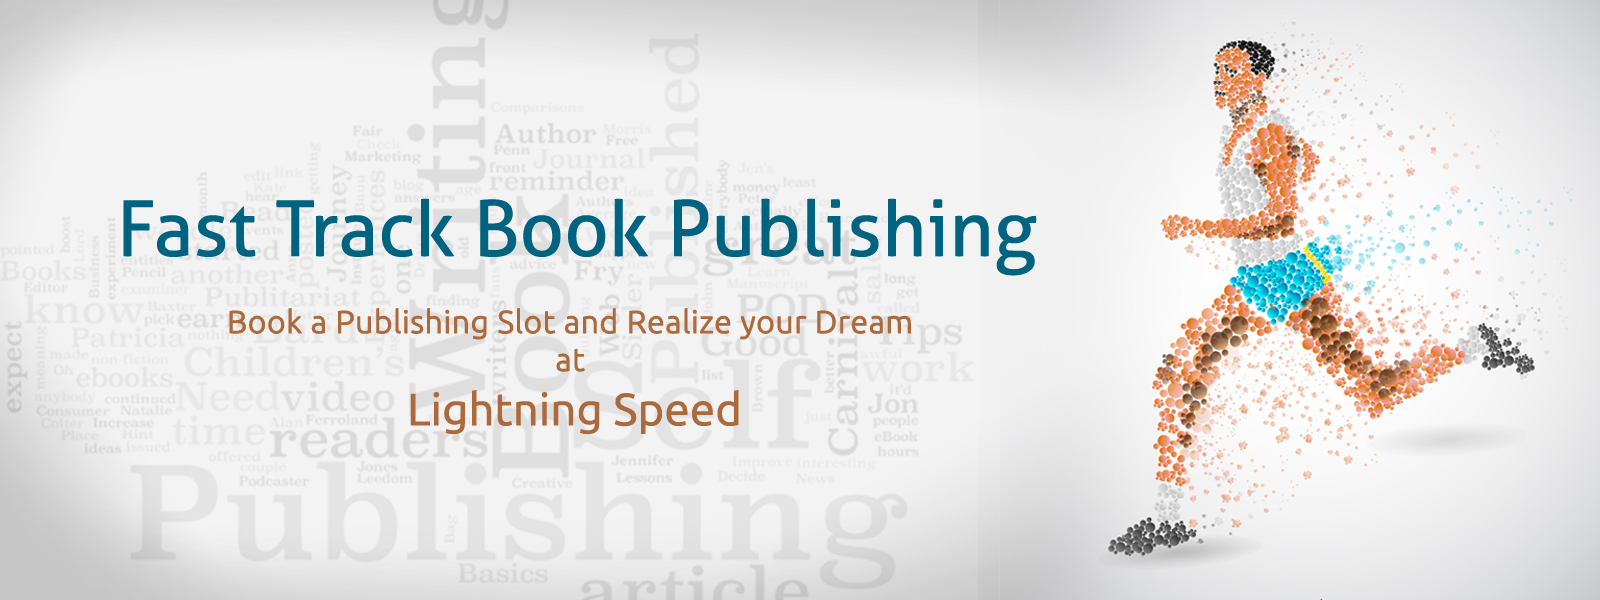 Fast Track Book Publishing